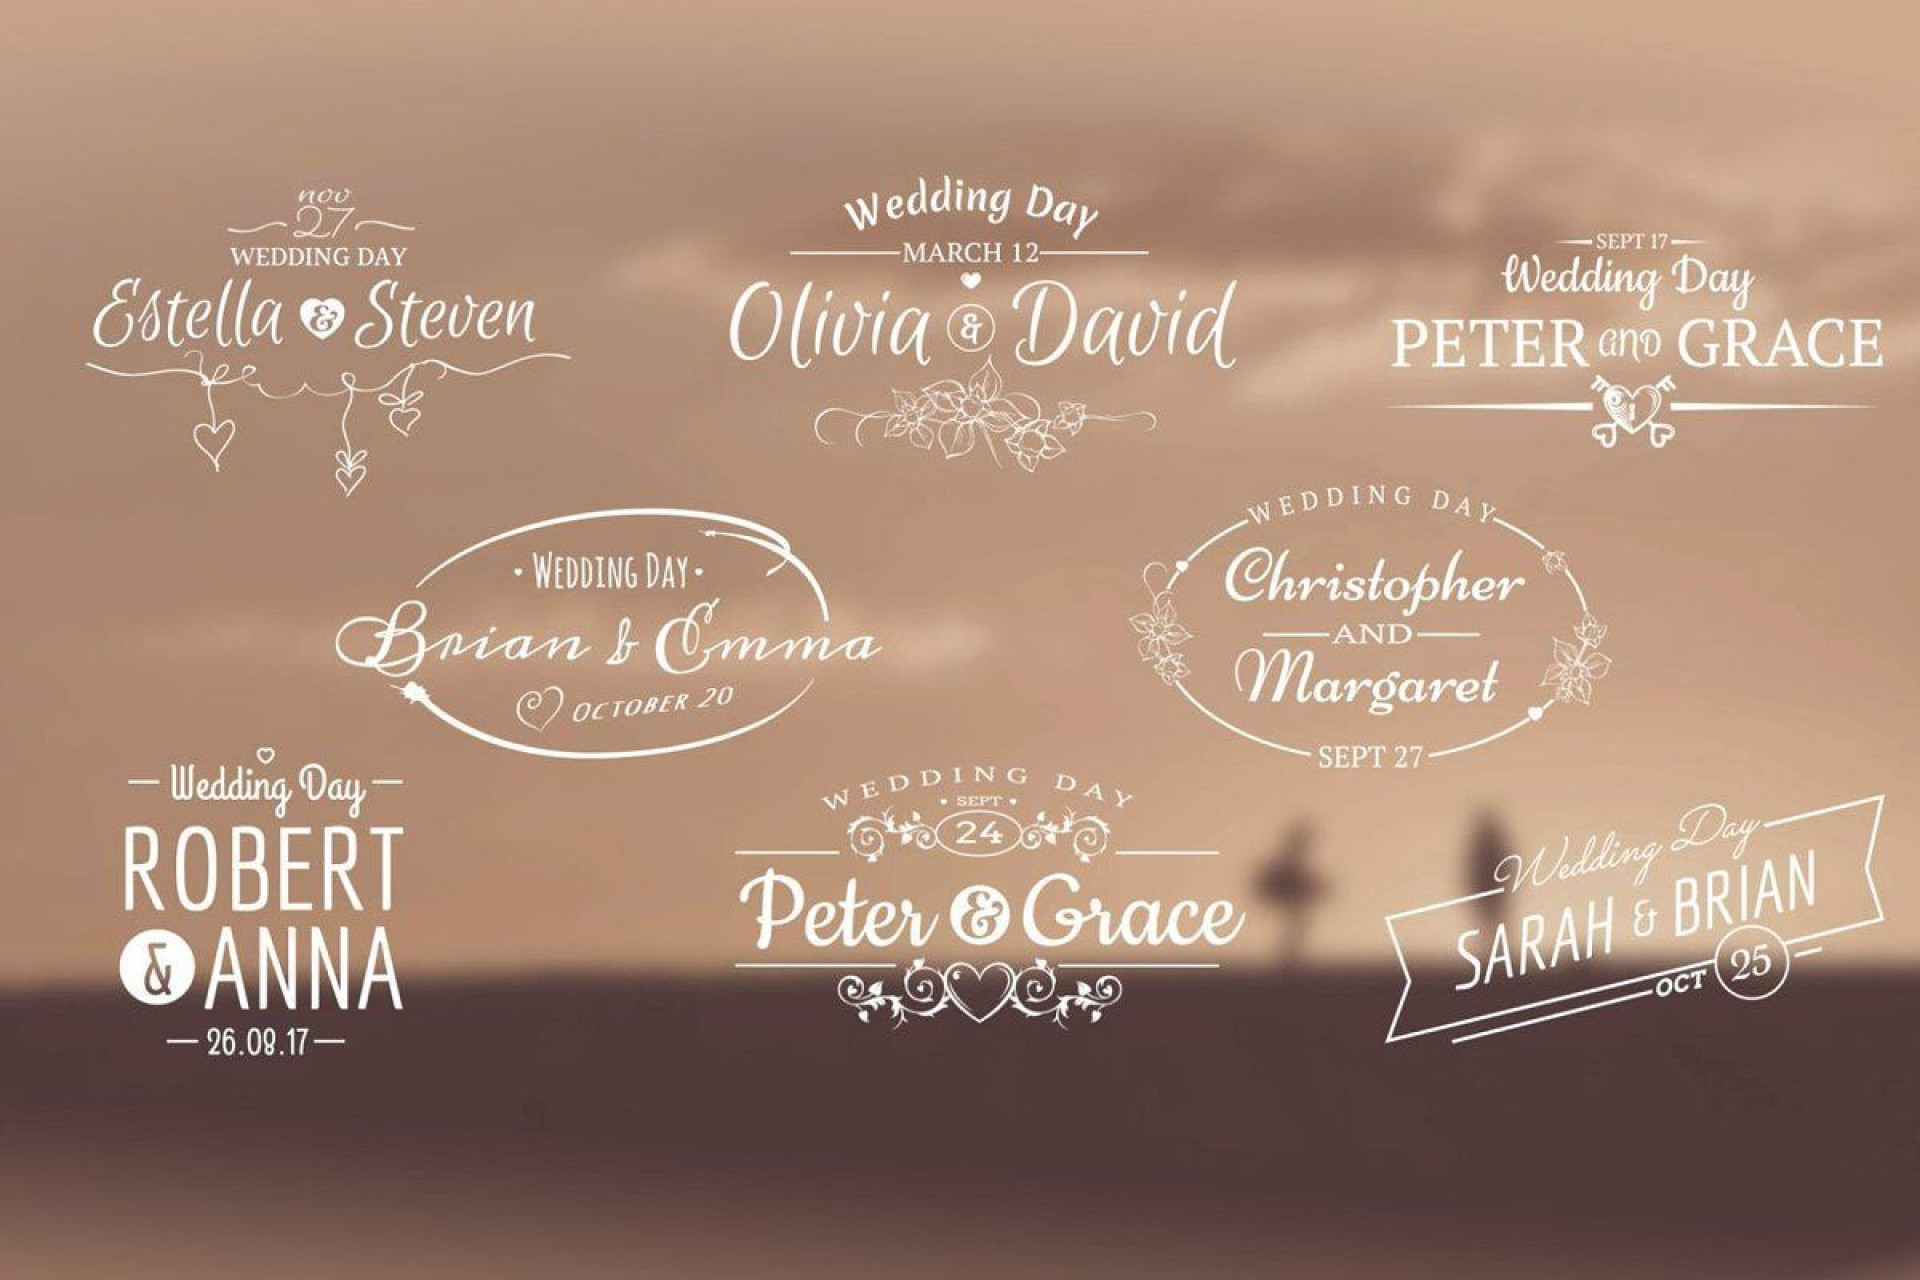 000 Staggering After Effect Wedding Template Picture  Templates Free Download Cc Invitation1920